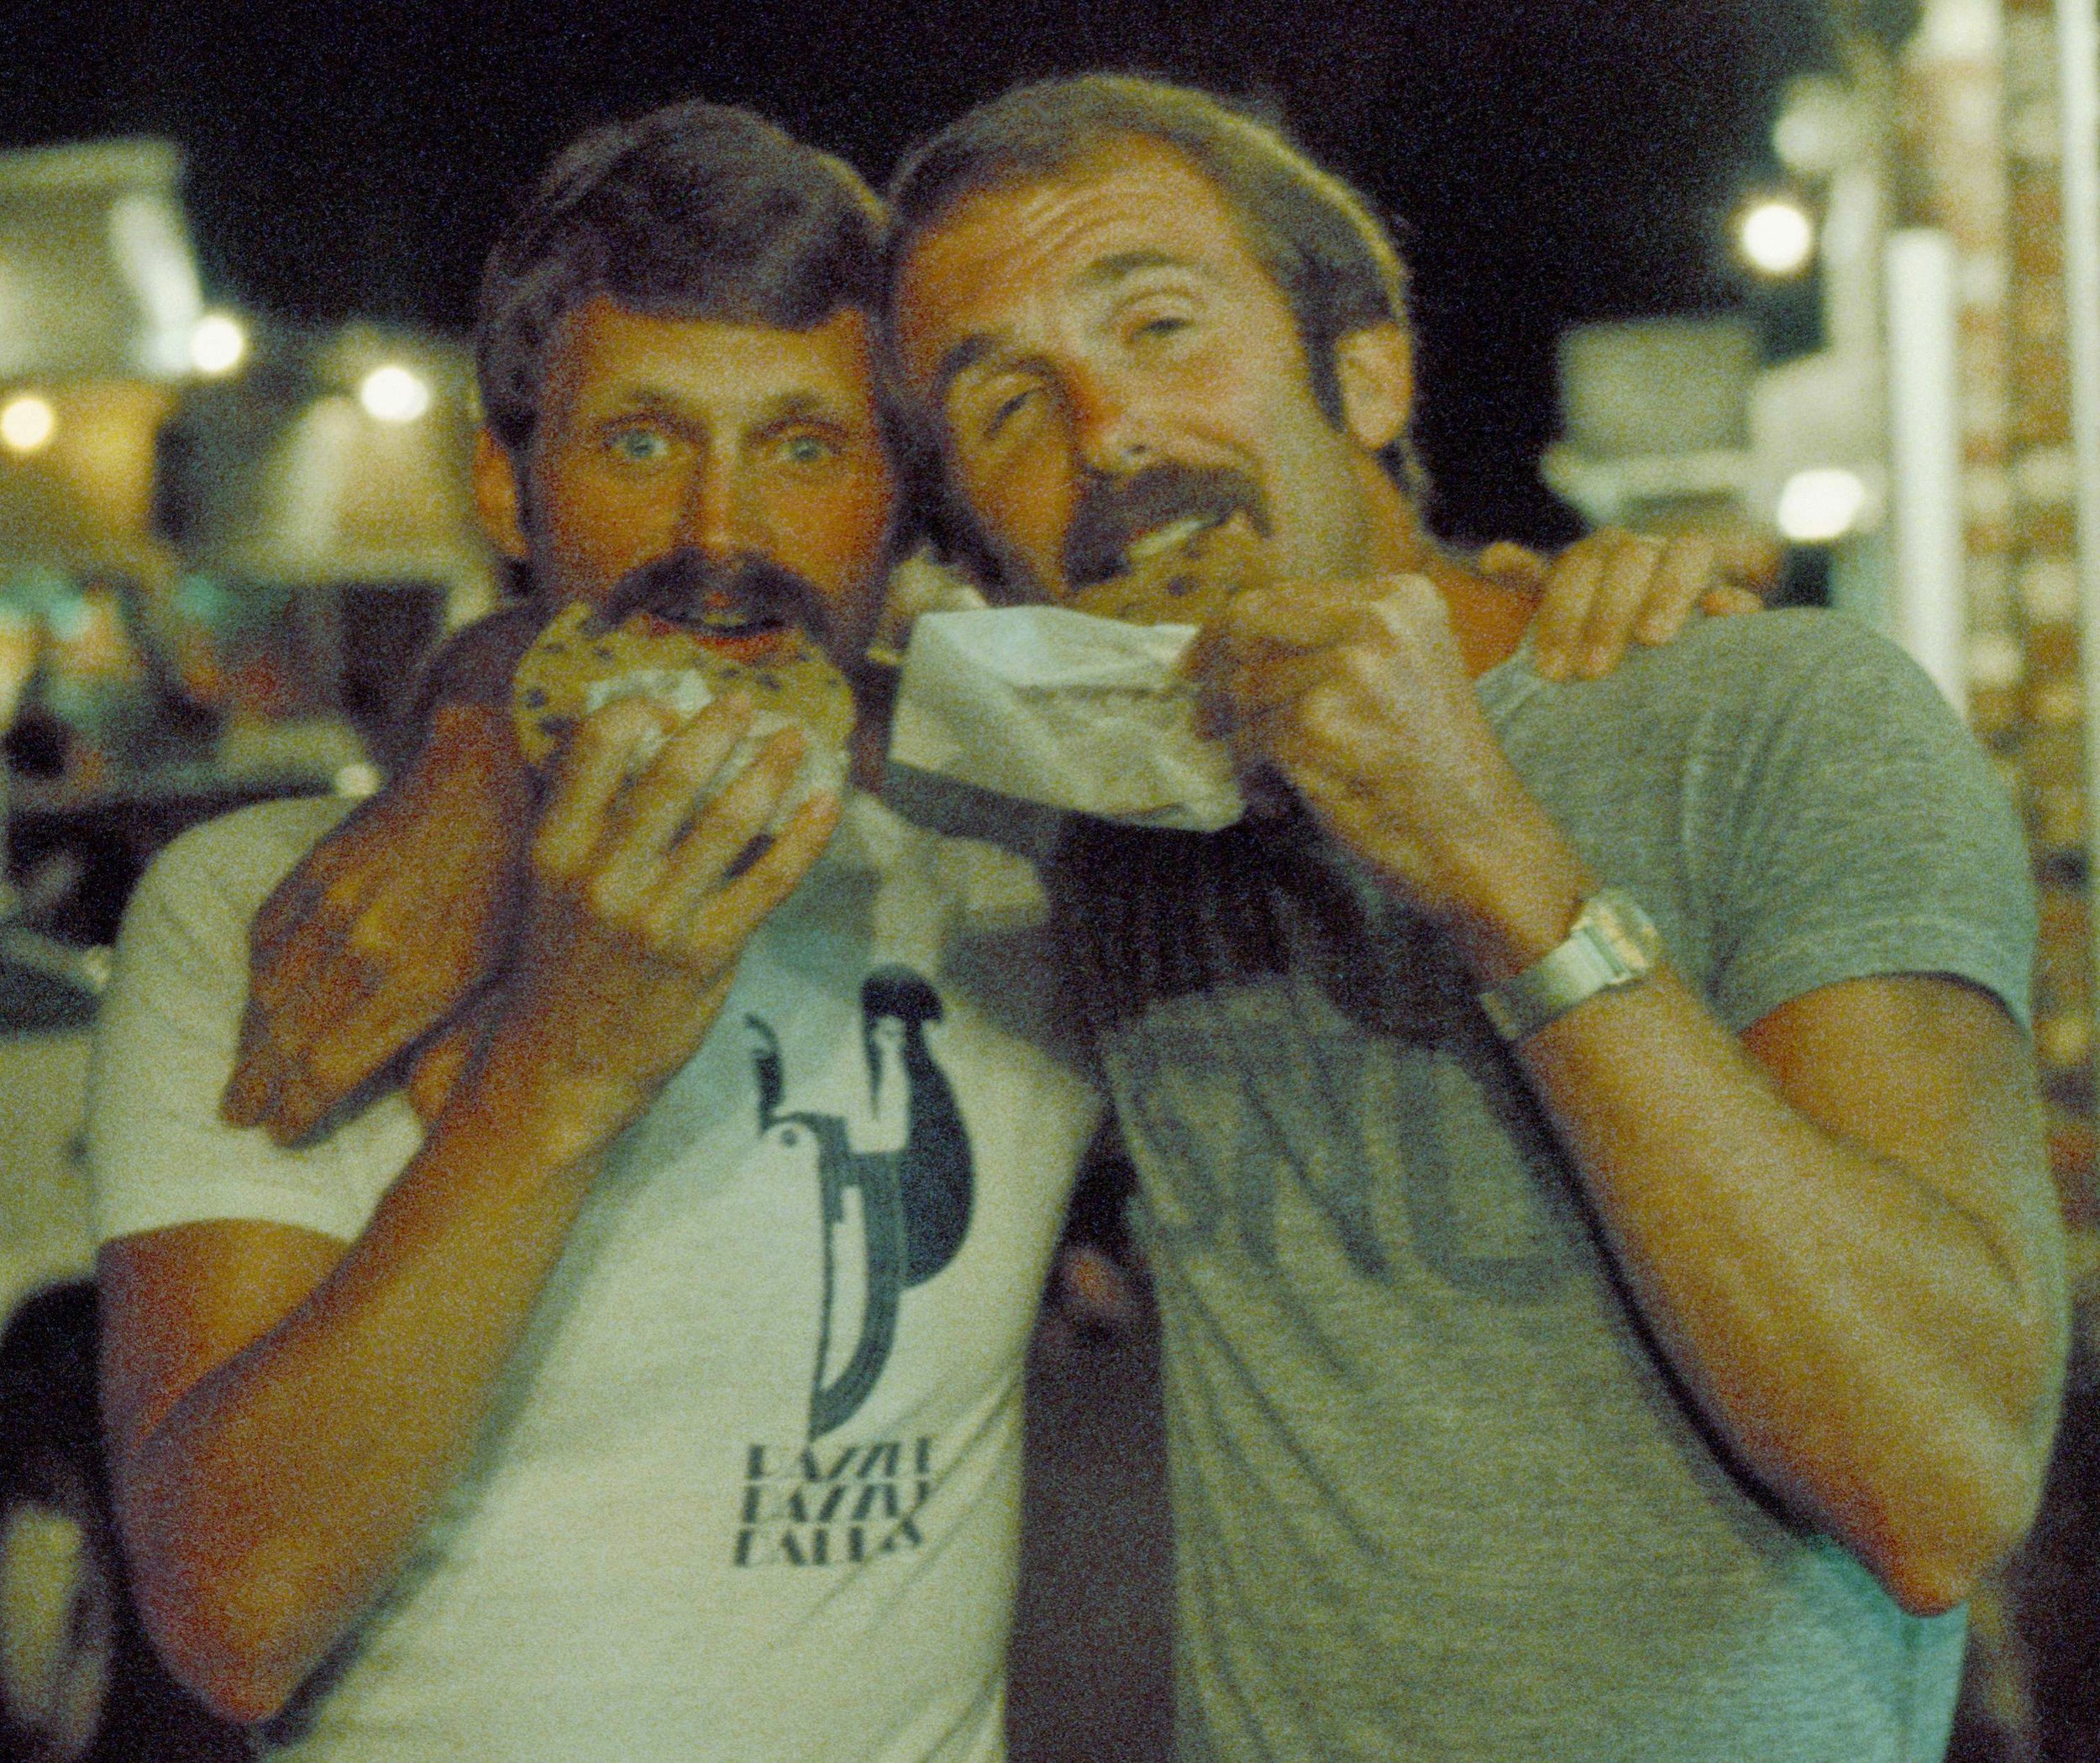 Terry Tebedo and Bill Nelson vacationing in Provincetown, MA.